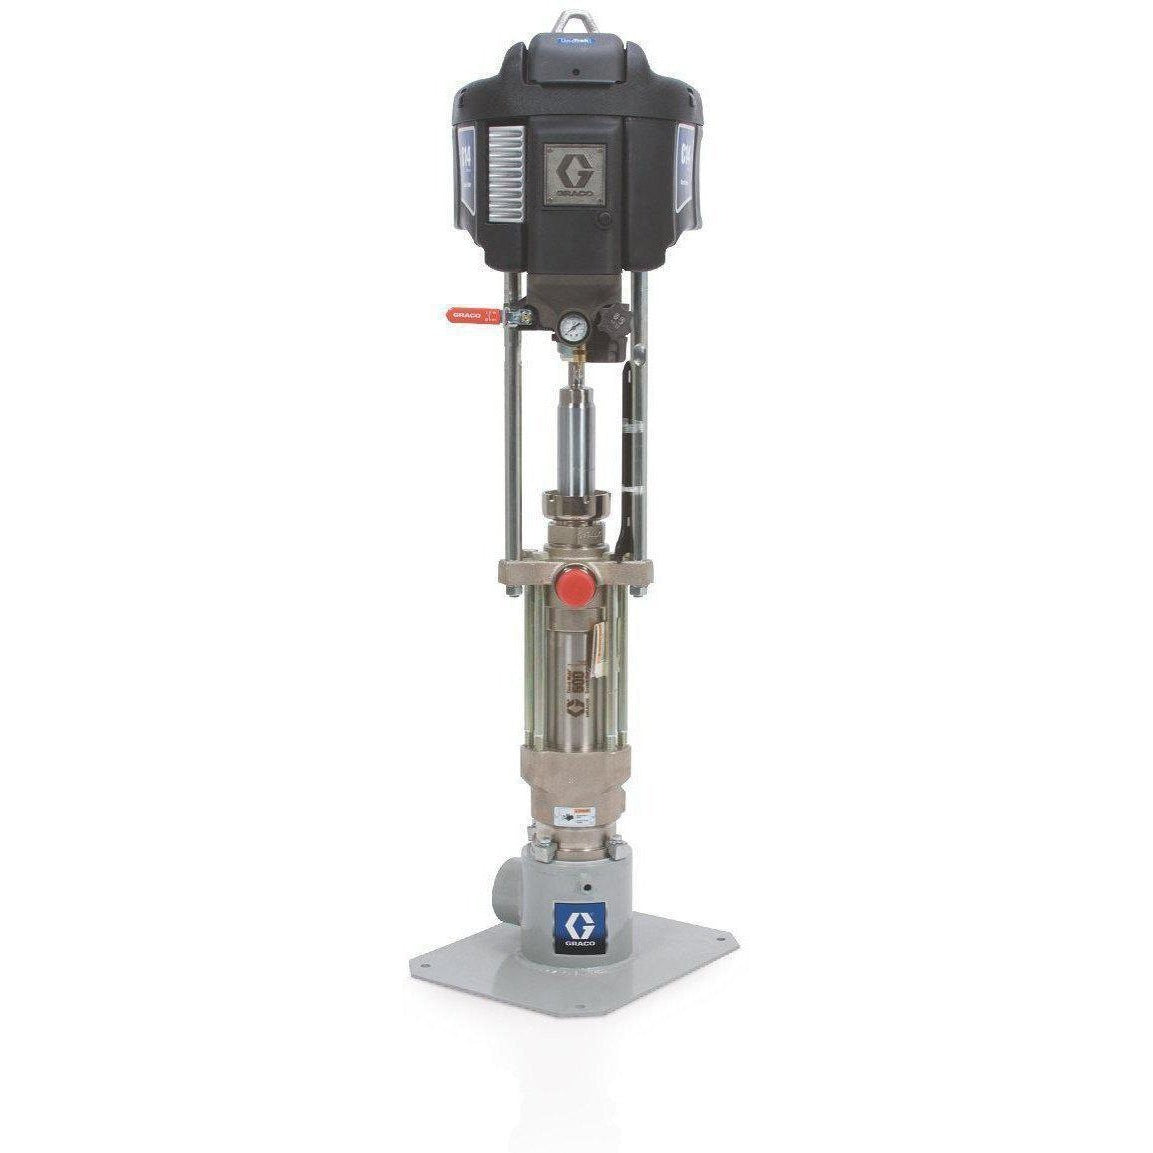 P68Dcs-Graco P68Dcs Nxt™ Check-Mateâ® Air-Powered 68:1 Grease Pump Without Datatrak-Order-Online-Fireball-Equipment